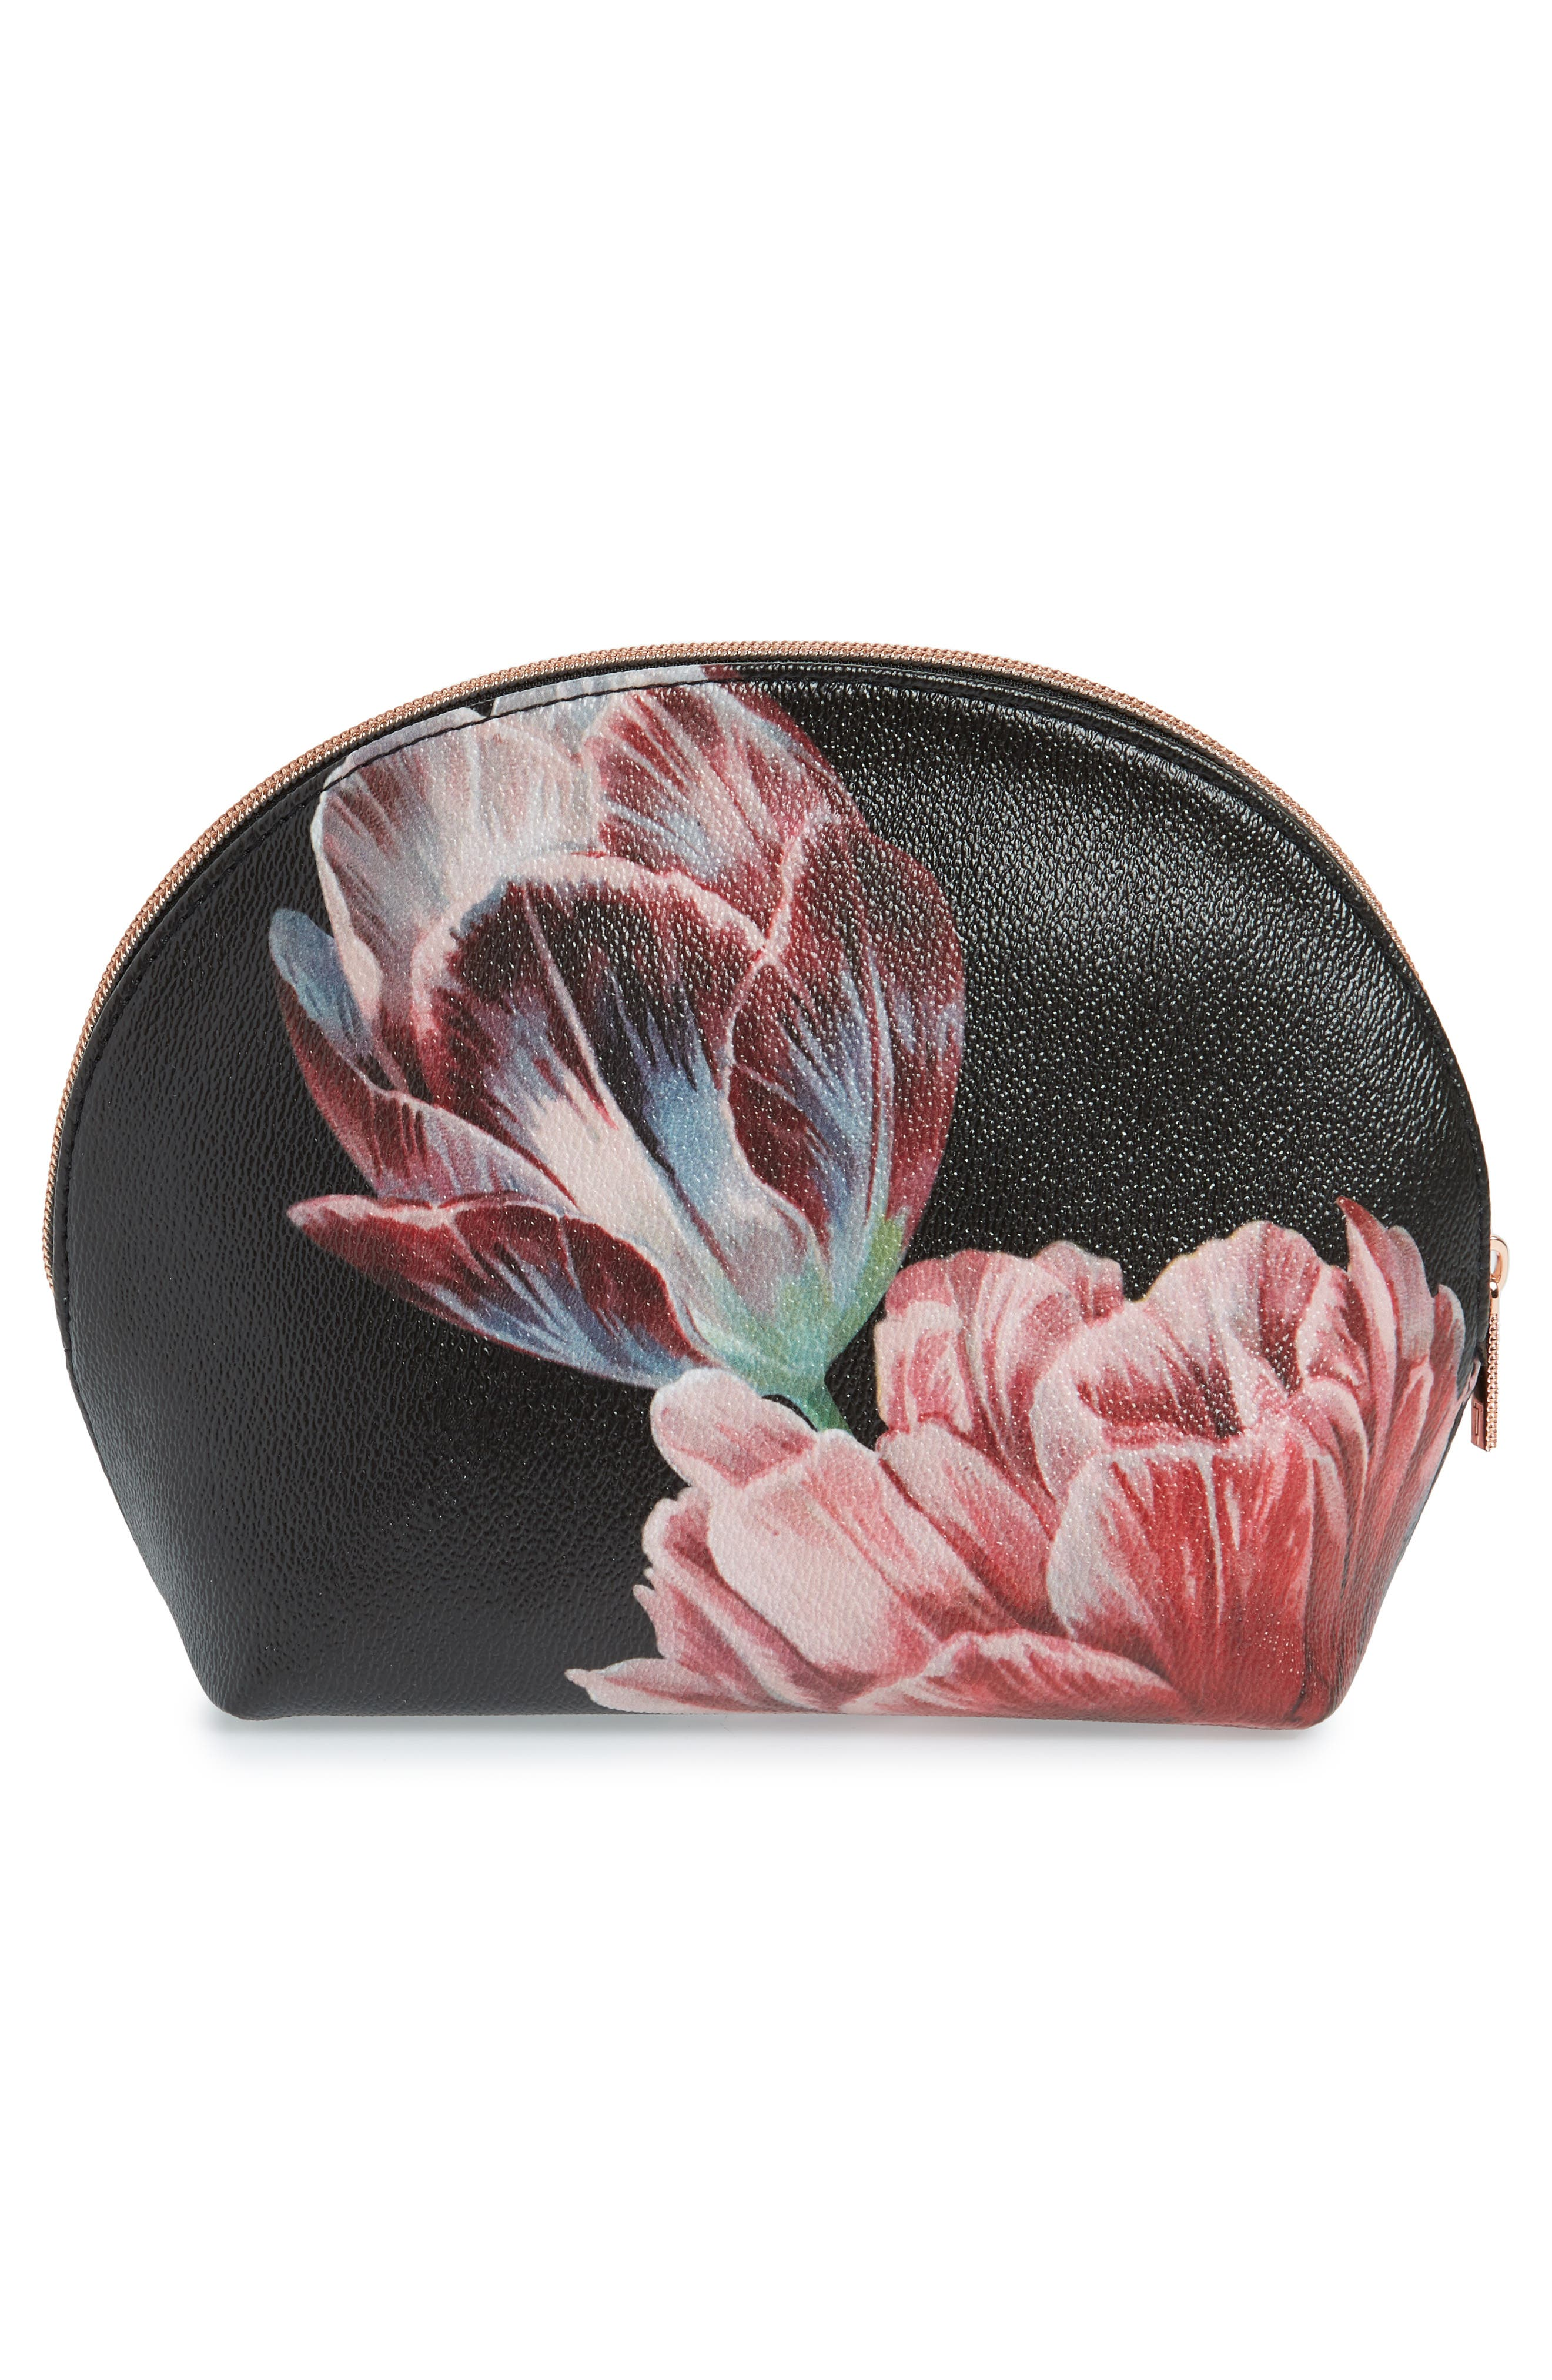 Tranquility Cosmetics Case,                             Alternate thumbnail 2, color,                             001